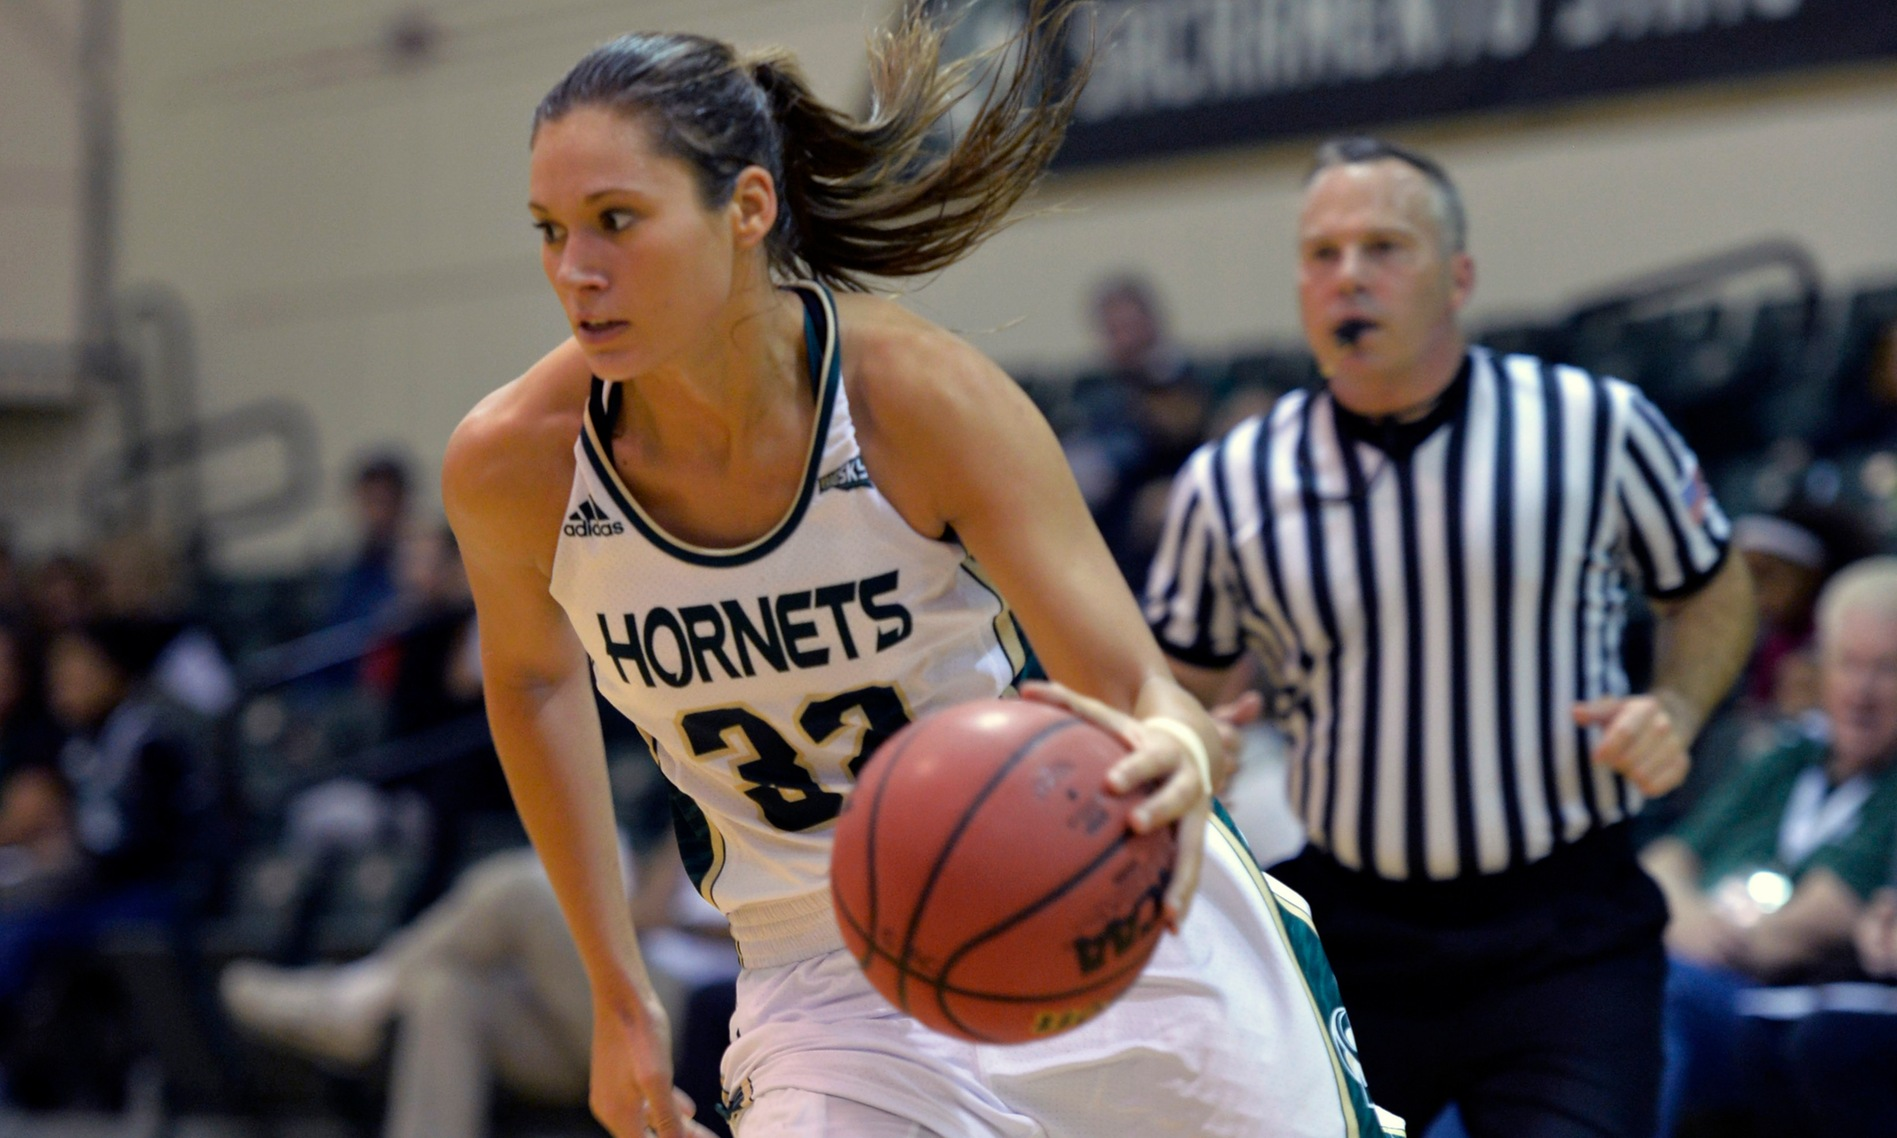 FRIEND SCORES 24, NICHOLAS RECORDS DOUBLE-DOUBLE BUT HORNETS FALL AT WEBER STATE